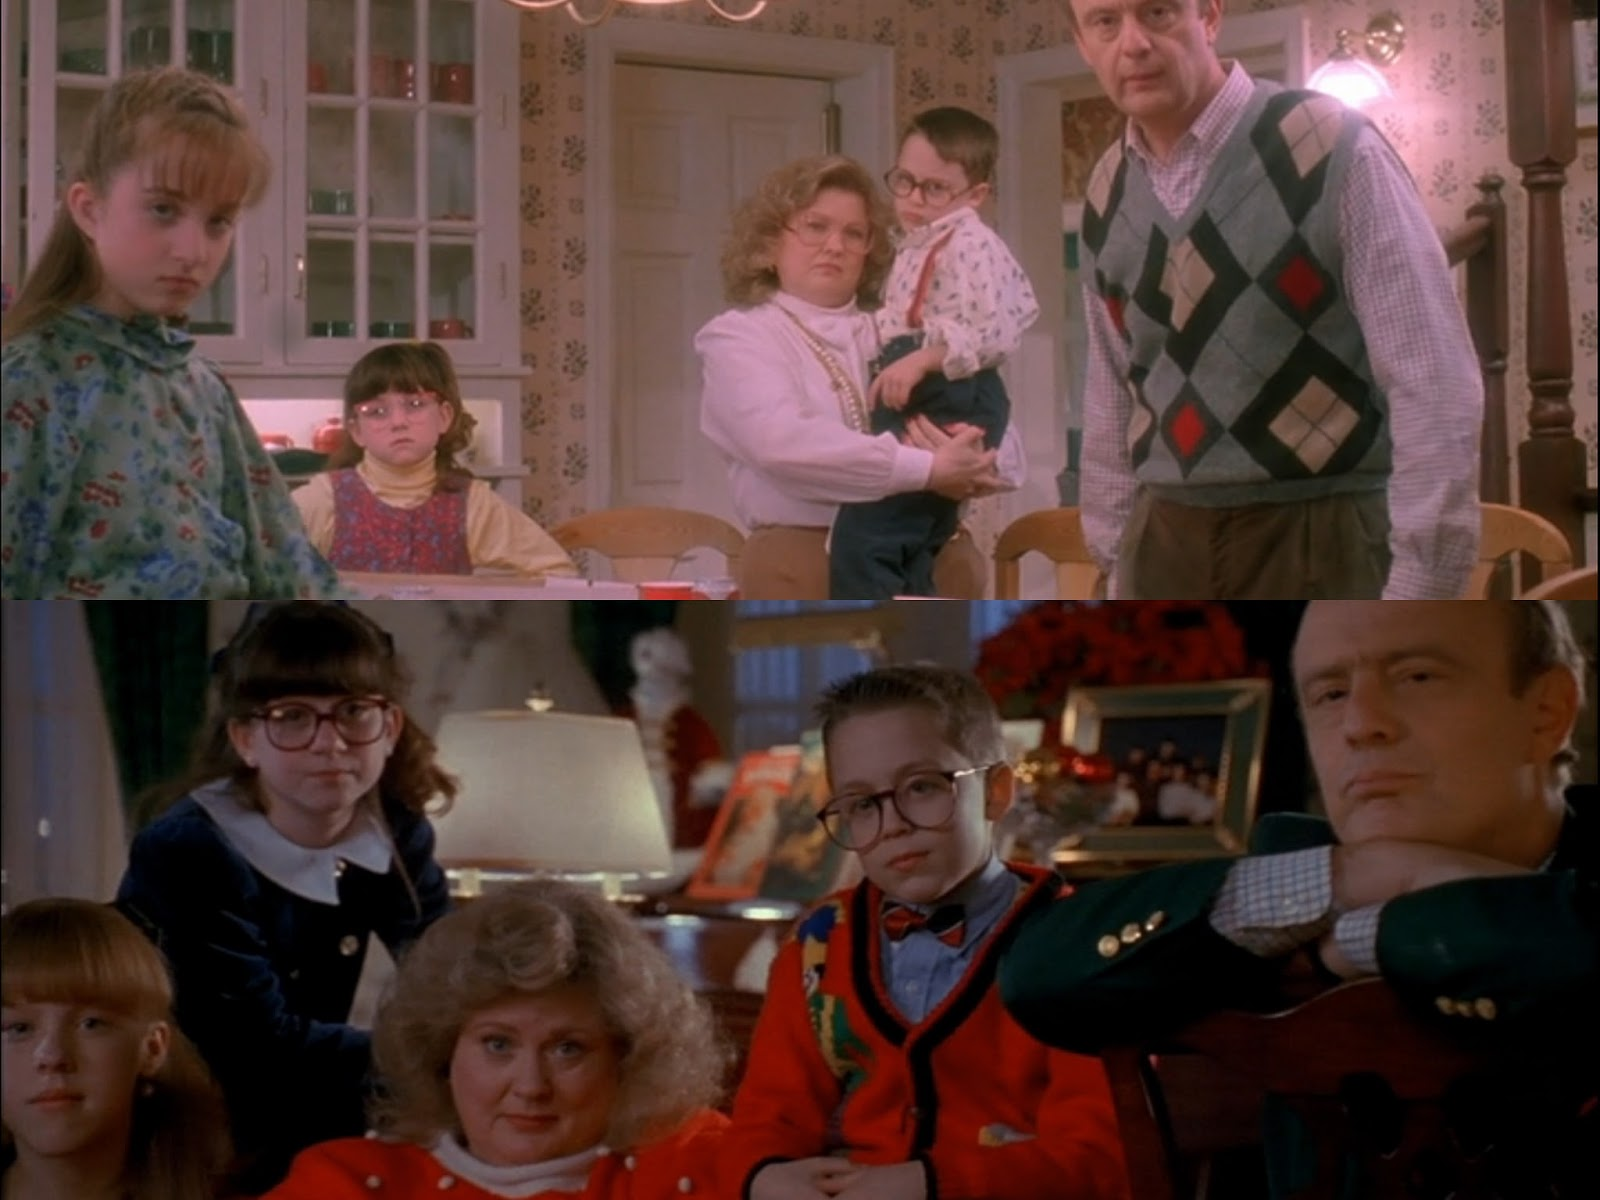 How Home Alone 2 Paved the Way for The Force Awakens